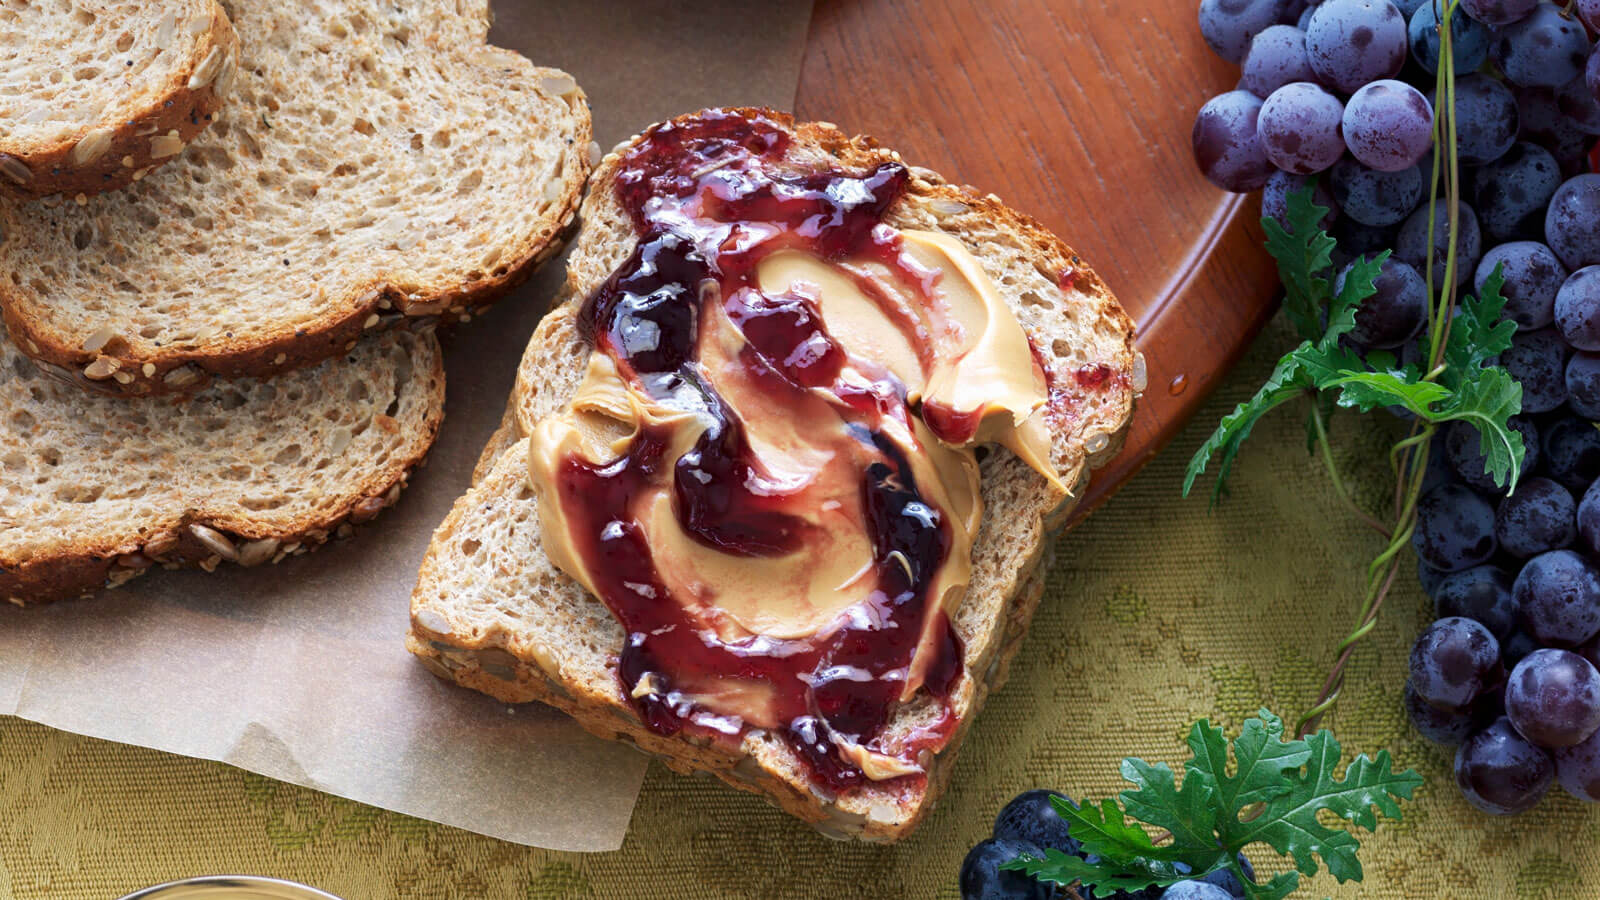 peanut-butter and jelly sandwich